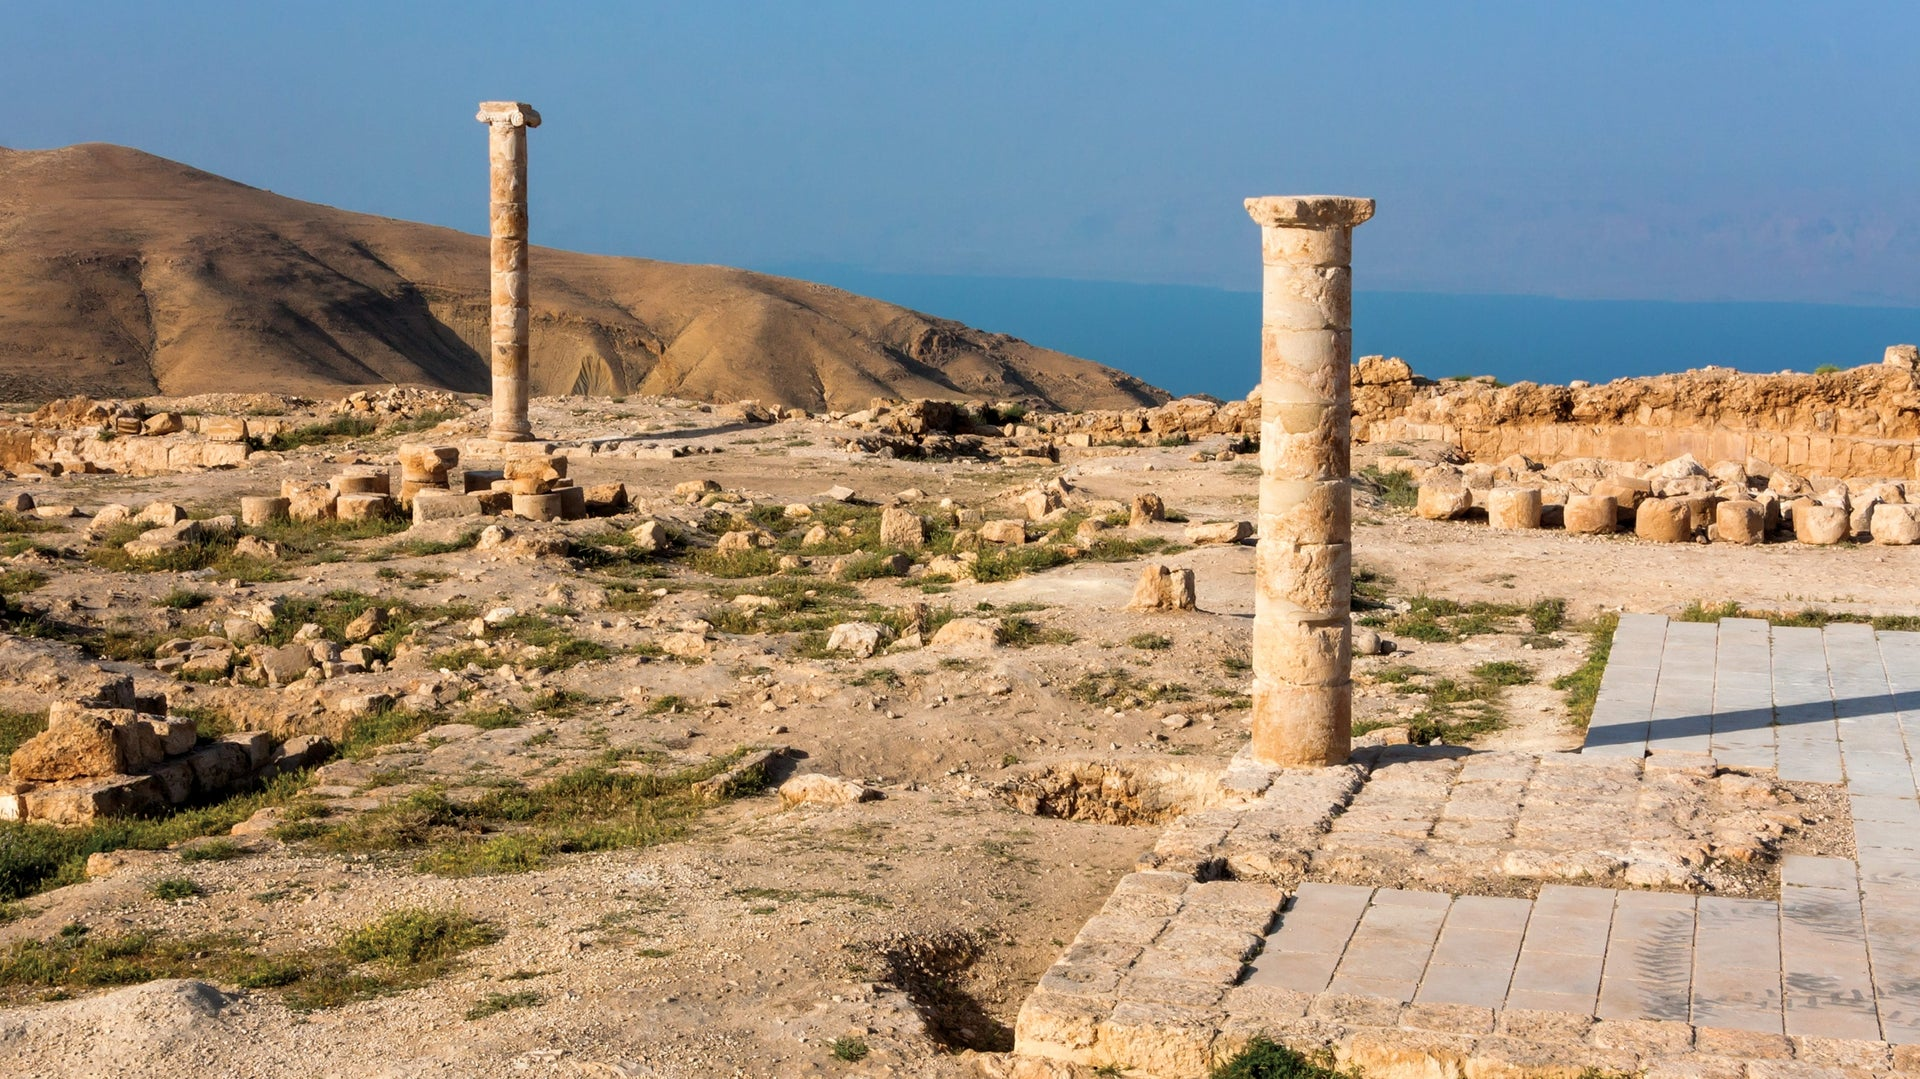 Two re-erected columns—one Doric (right) and one Ionic—stand tall atop Machaerus with the Dead Sea in the background. The Doric column is shorter, stumpier and with a plain capital. The Ionic column is taller, slenderer and with a fancy scroll capi-tal.